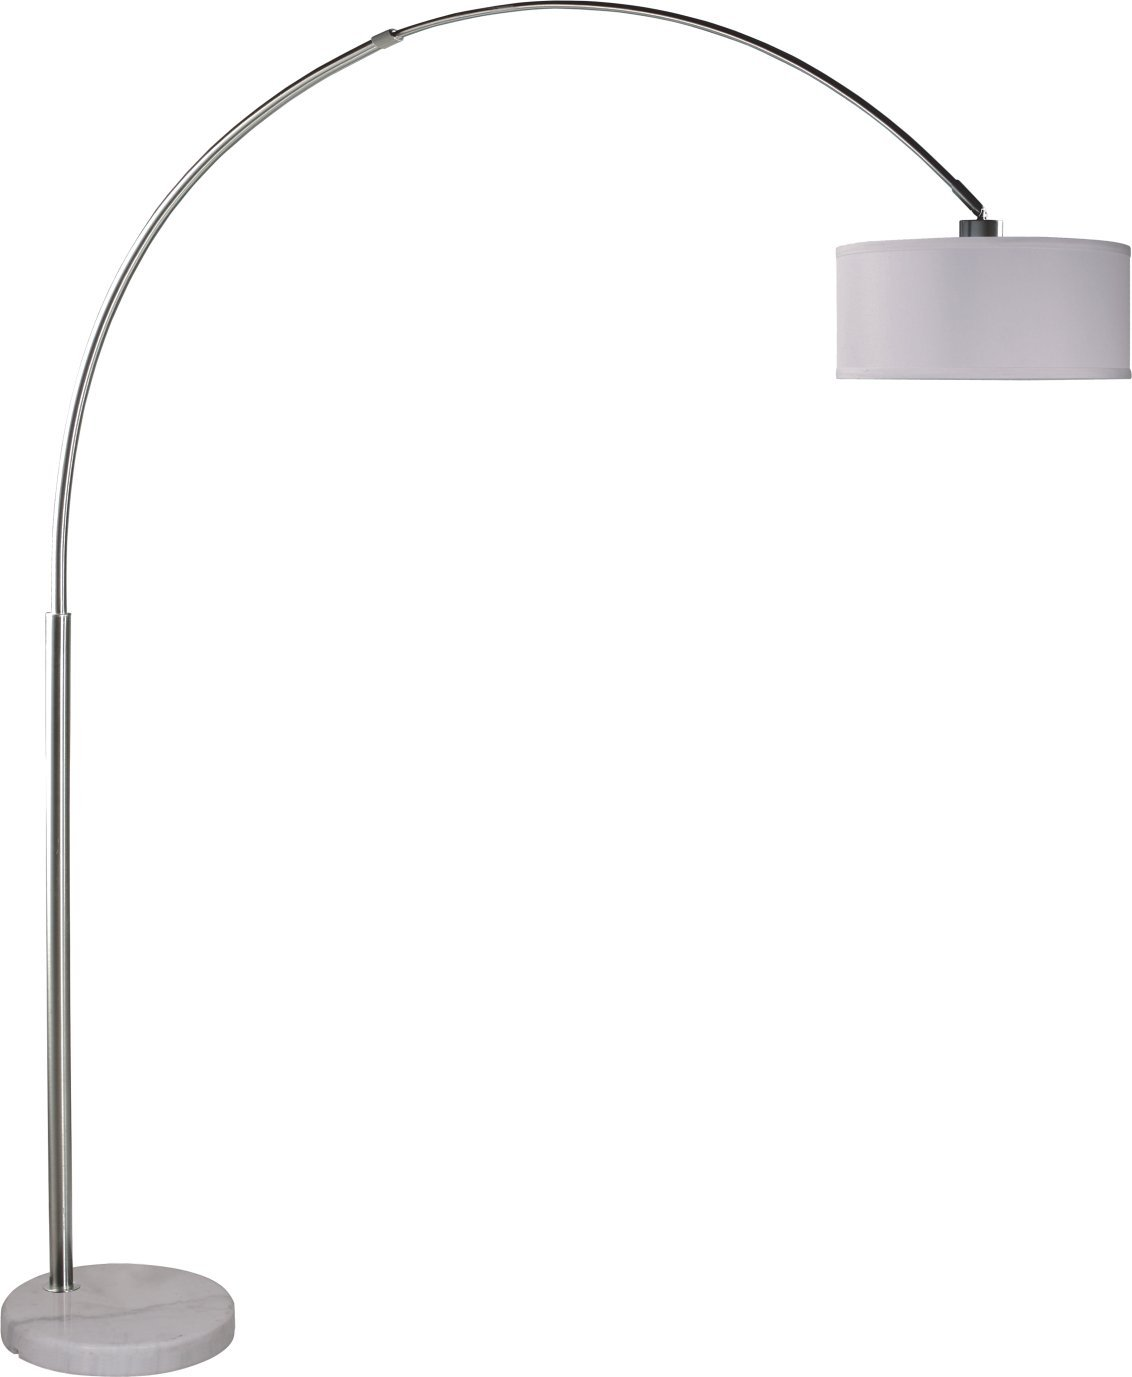 SH Lighting Milton Greens Stars Sophia Adjustable Arc Floor Lamp with Marble Base, 81-Inch by SH Lighting